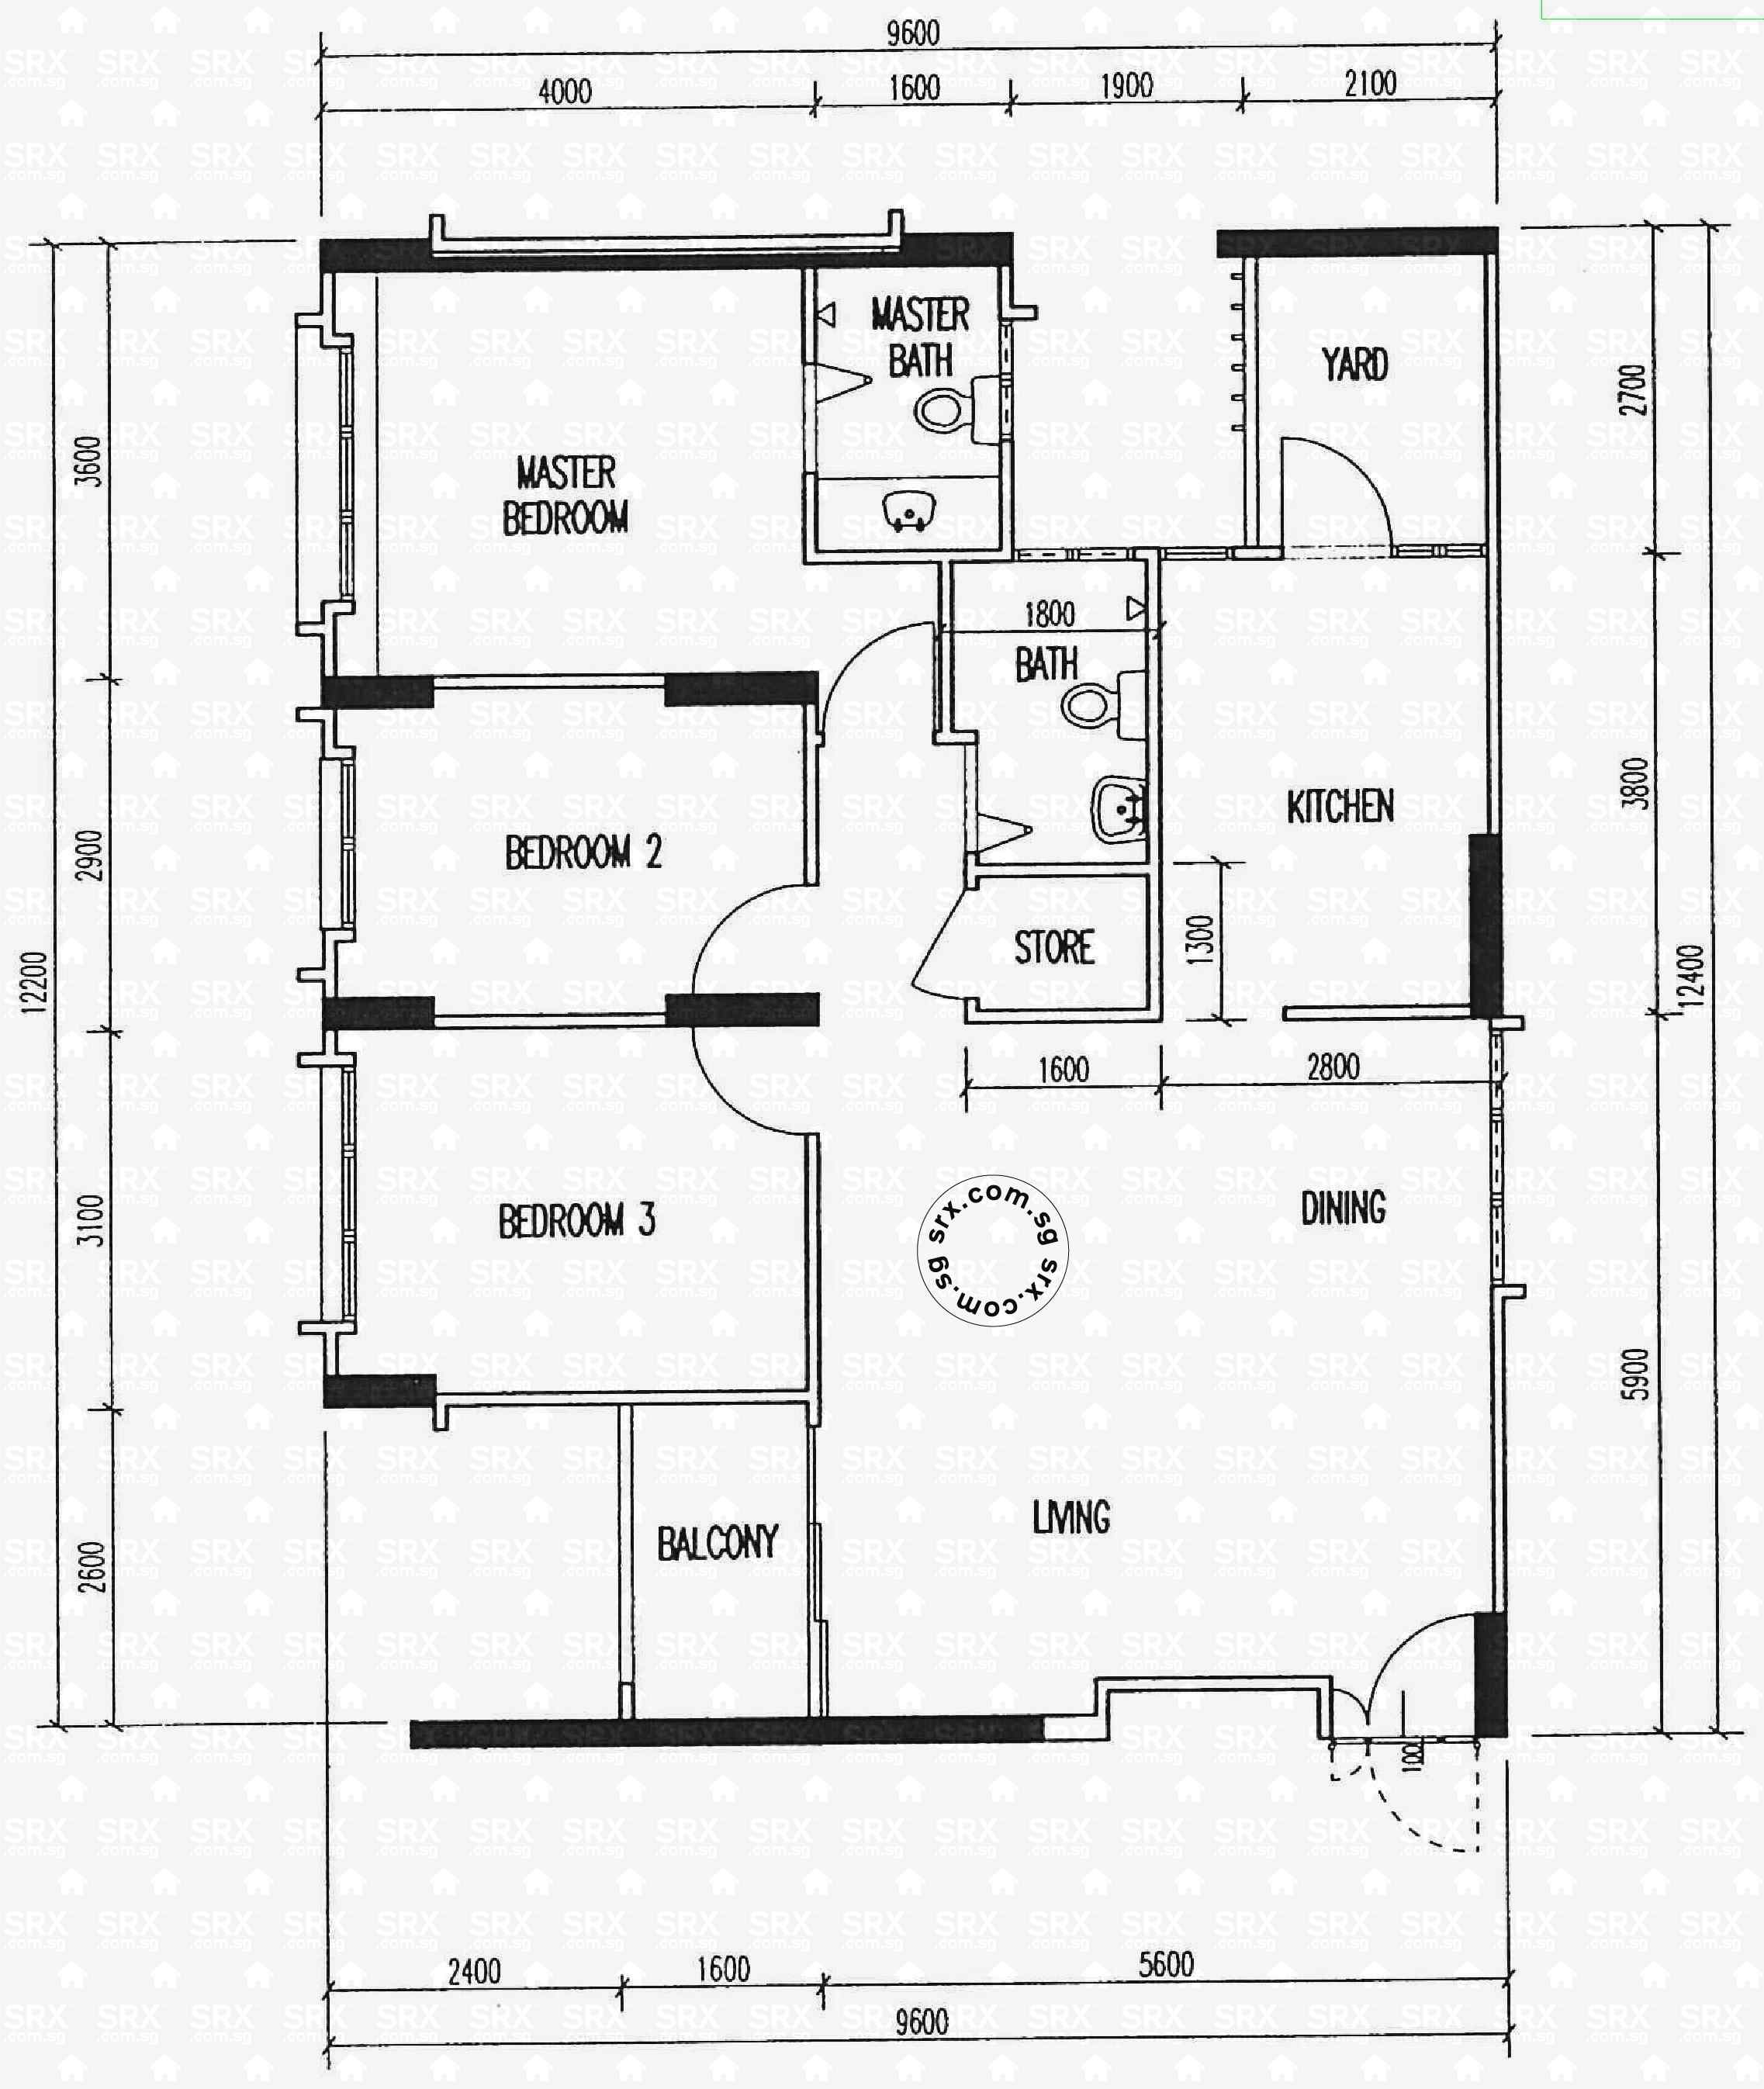 Floor plans for choa chu kang crescent hdb details srx for 521 plan